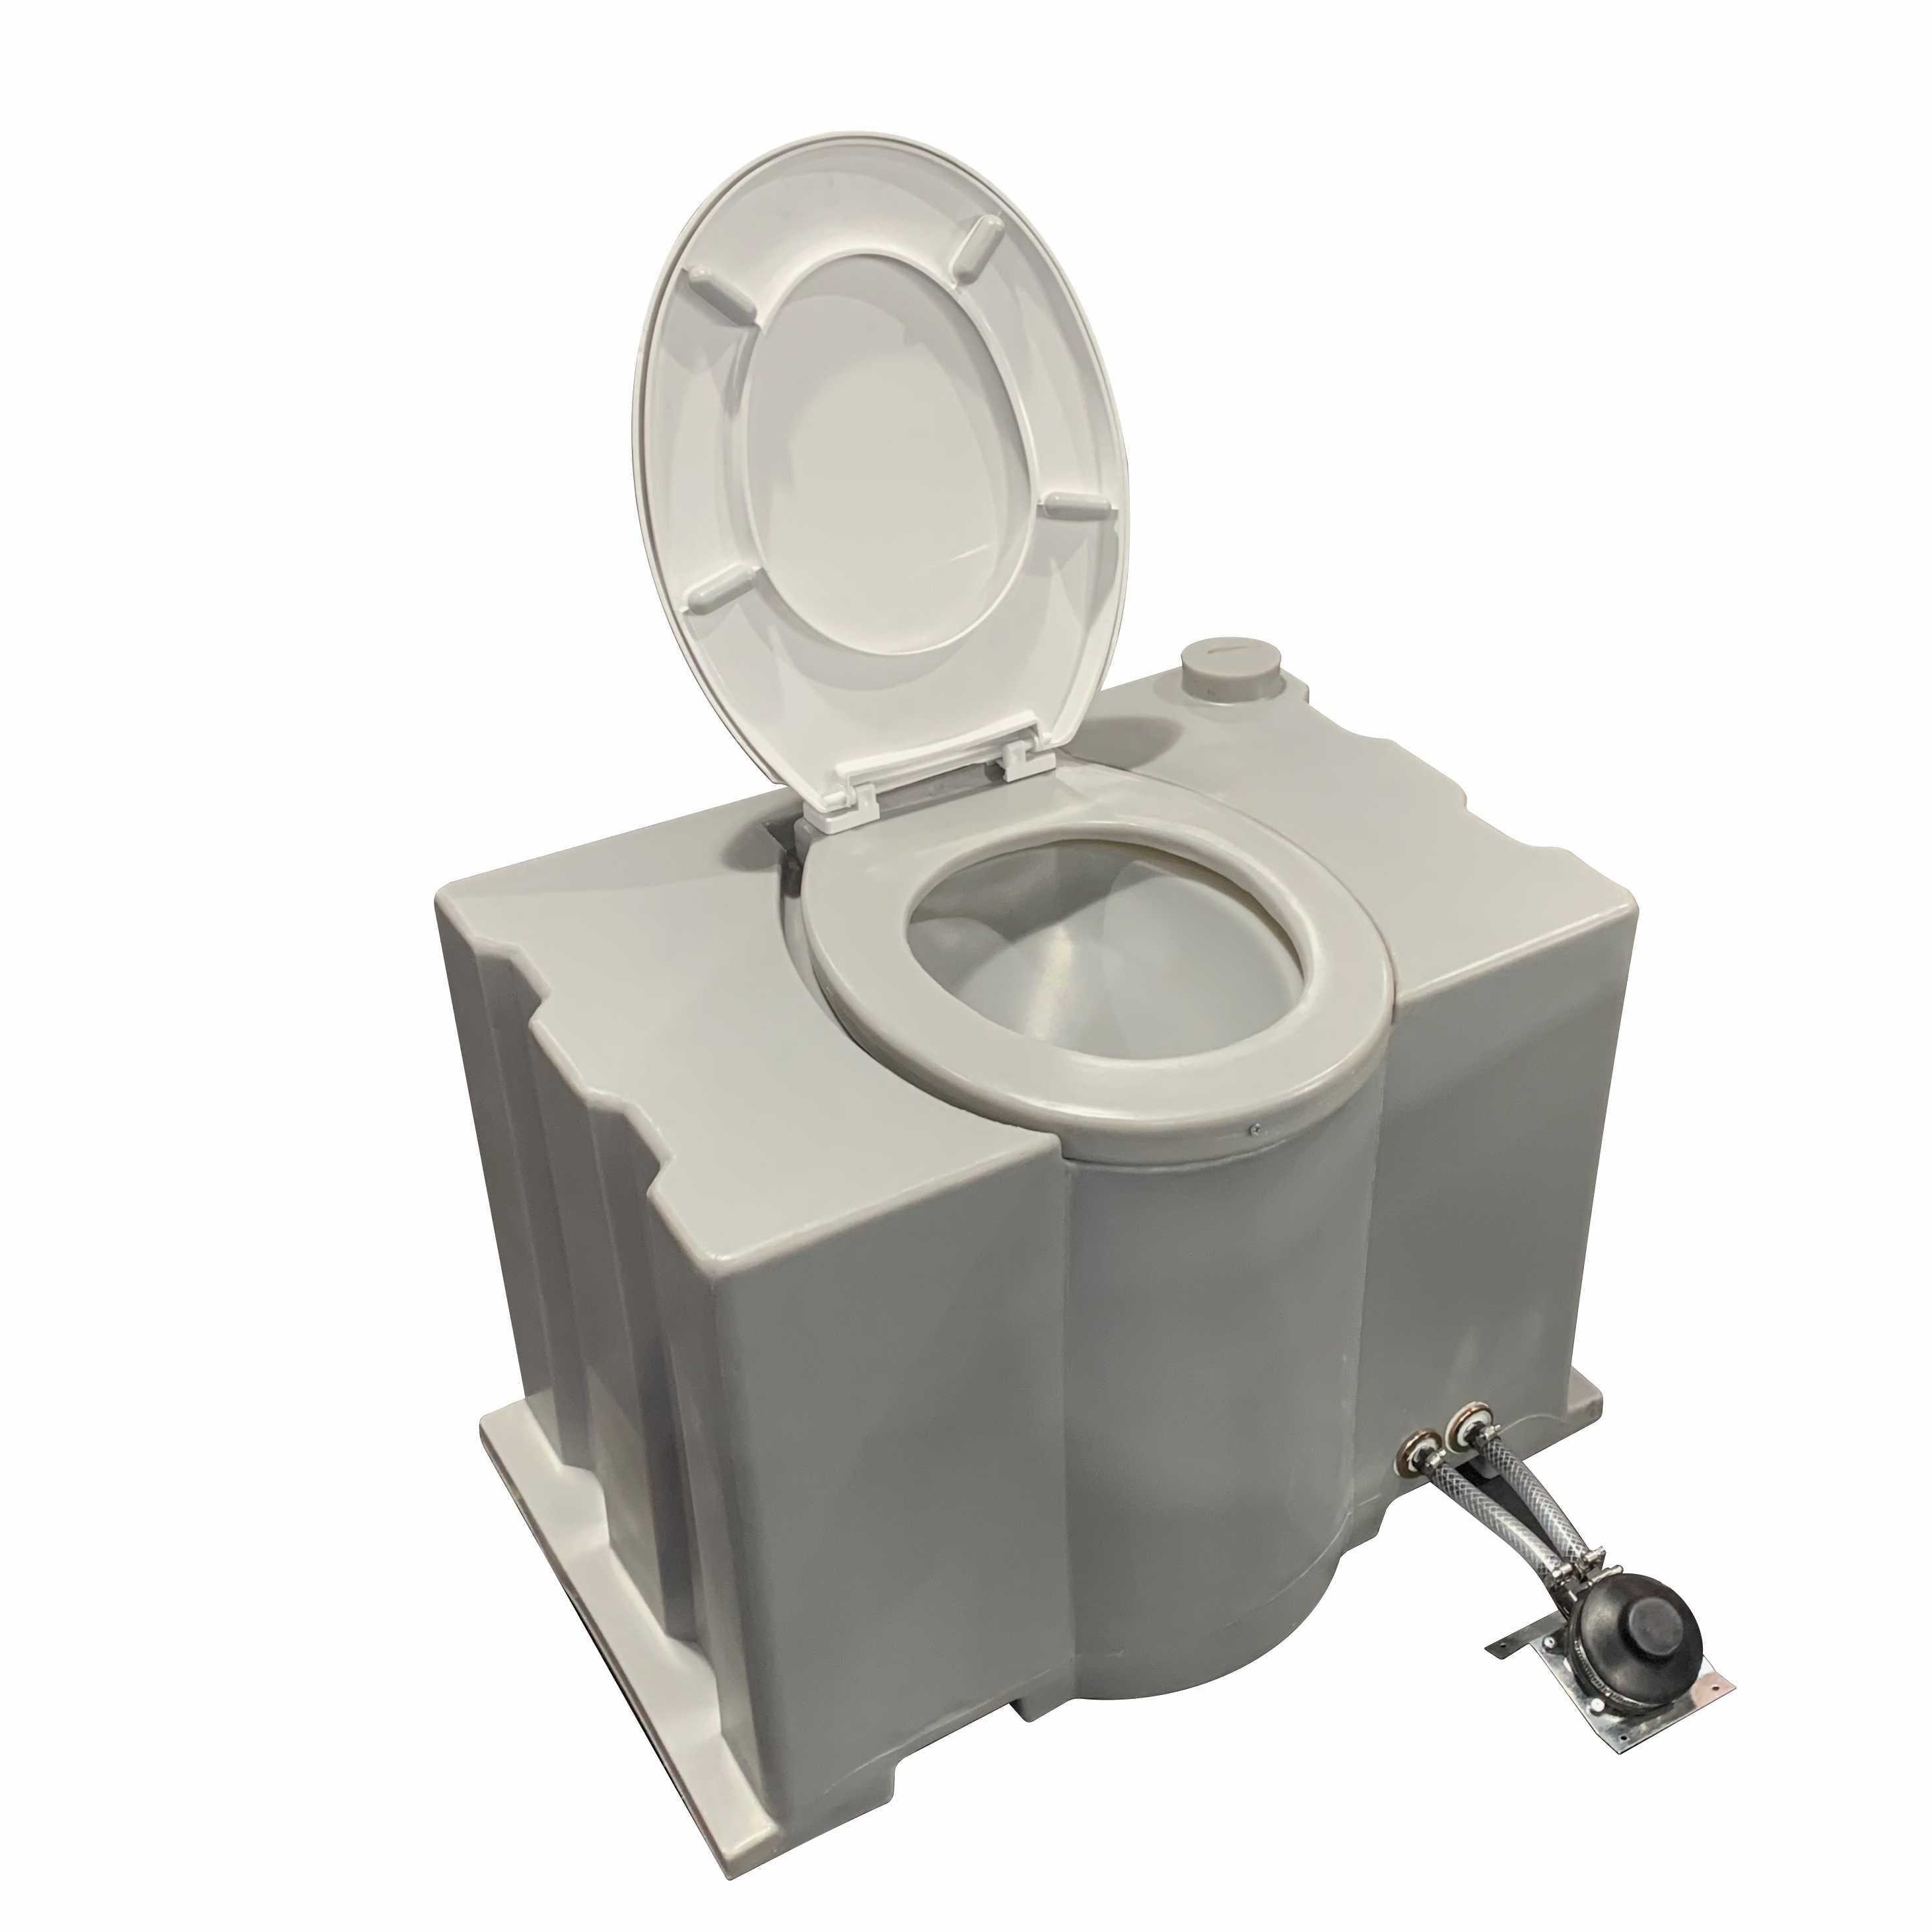 Toilet Pedestal With Foot Flush